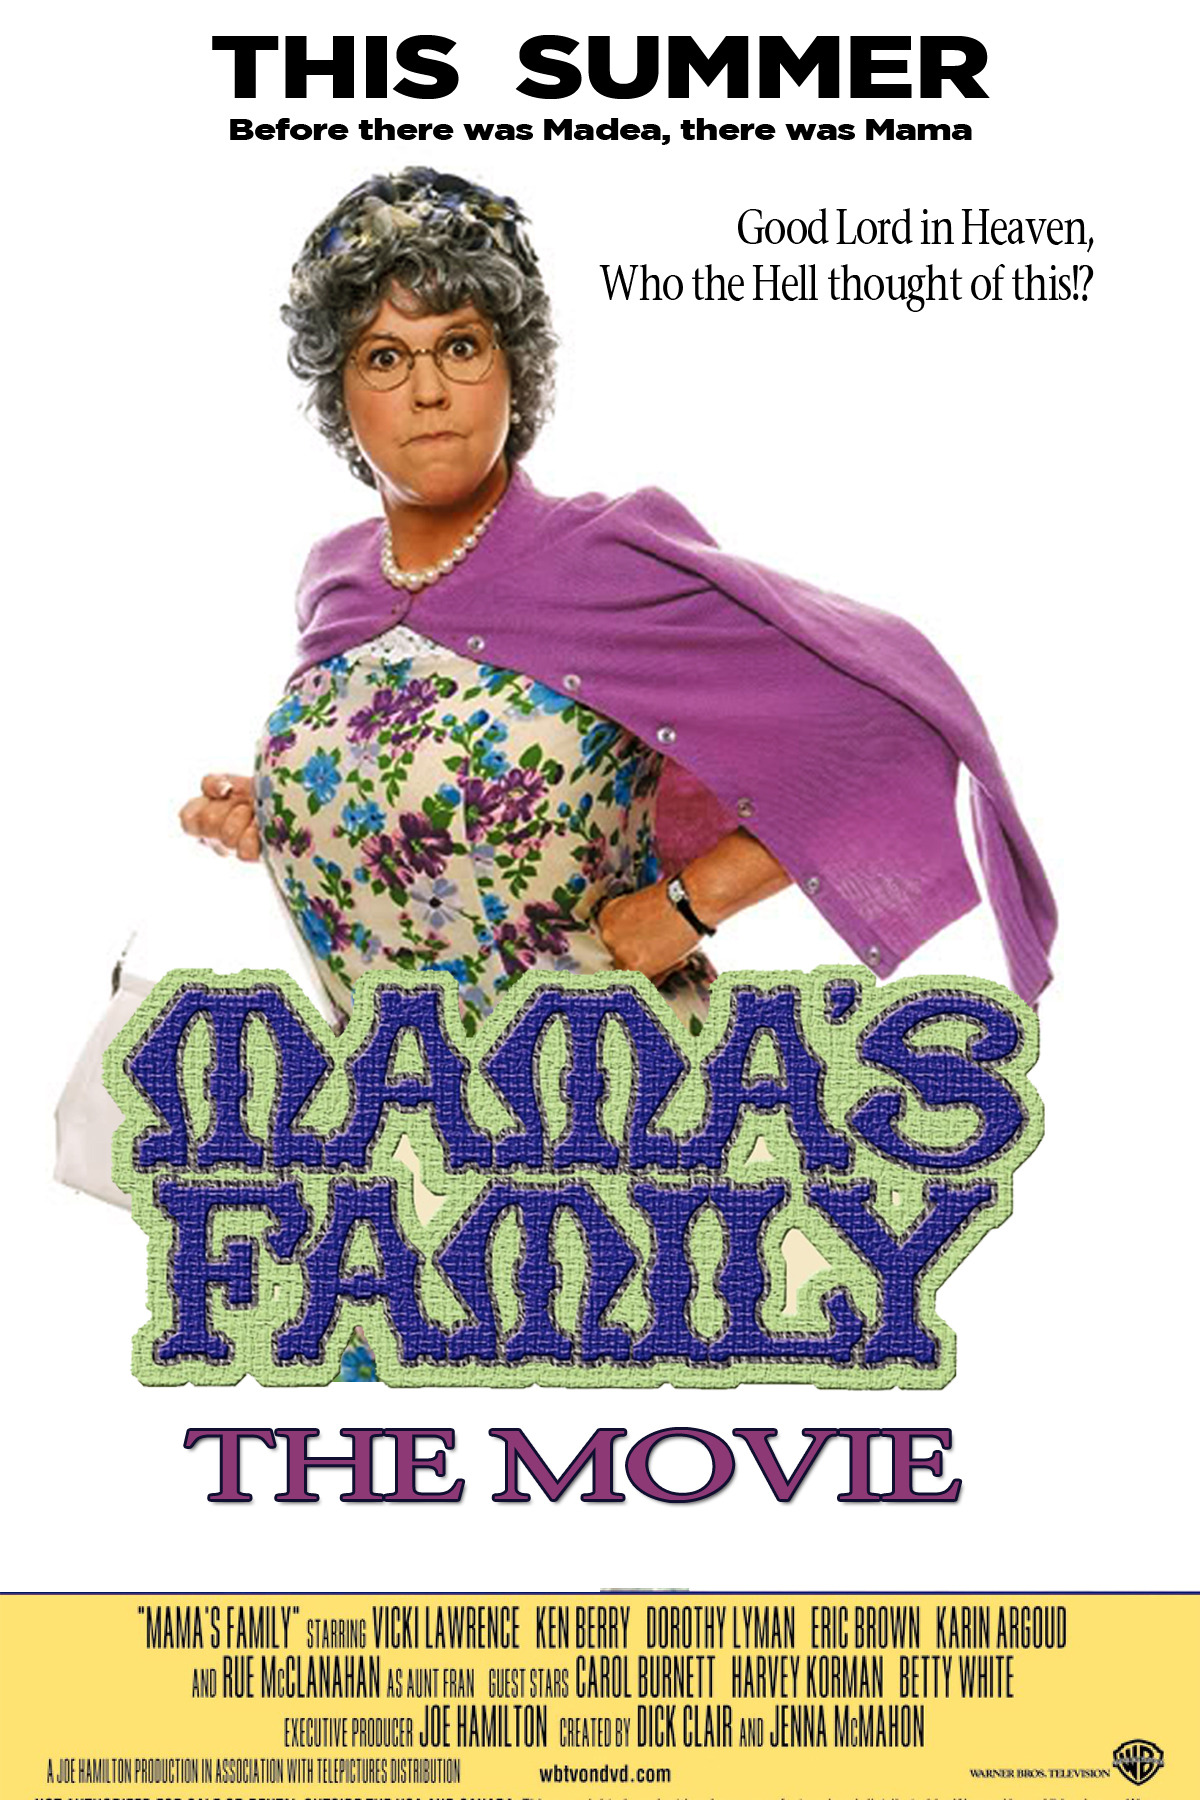 Before there was Madea…there was Mama. YESSS! I wanna see this!! LOL